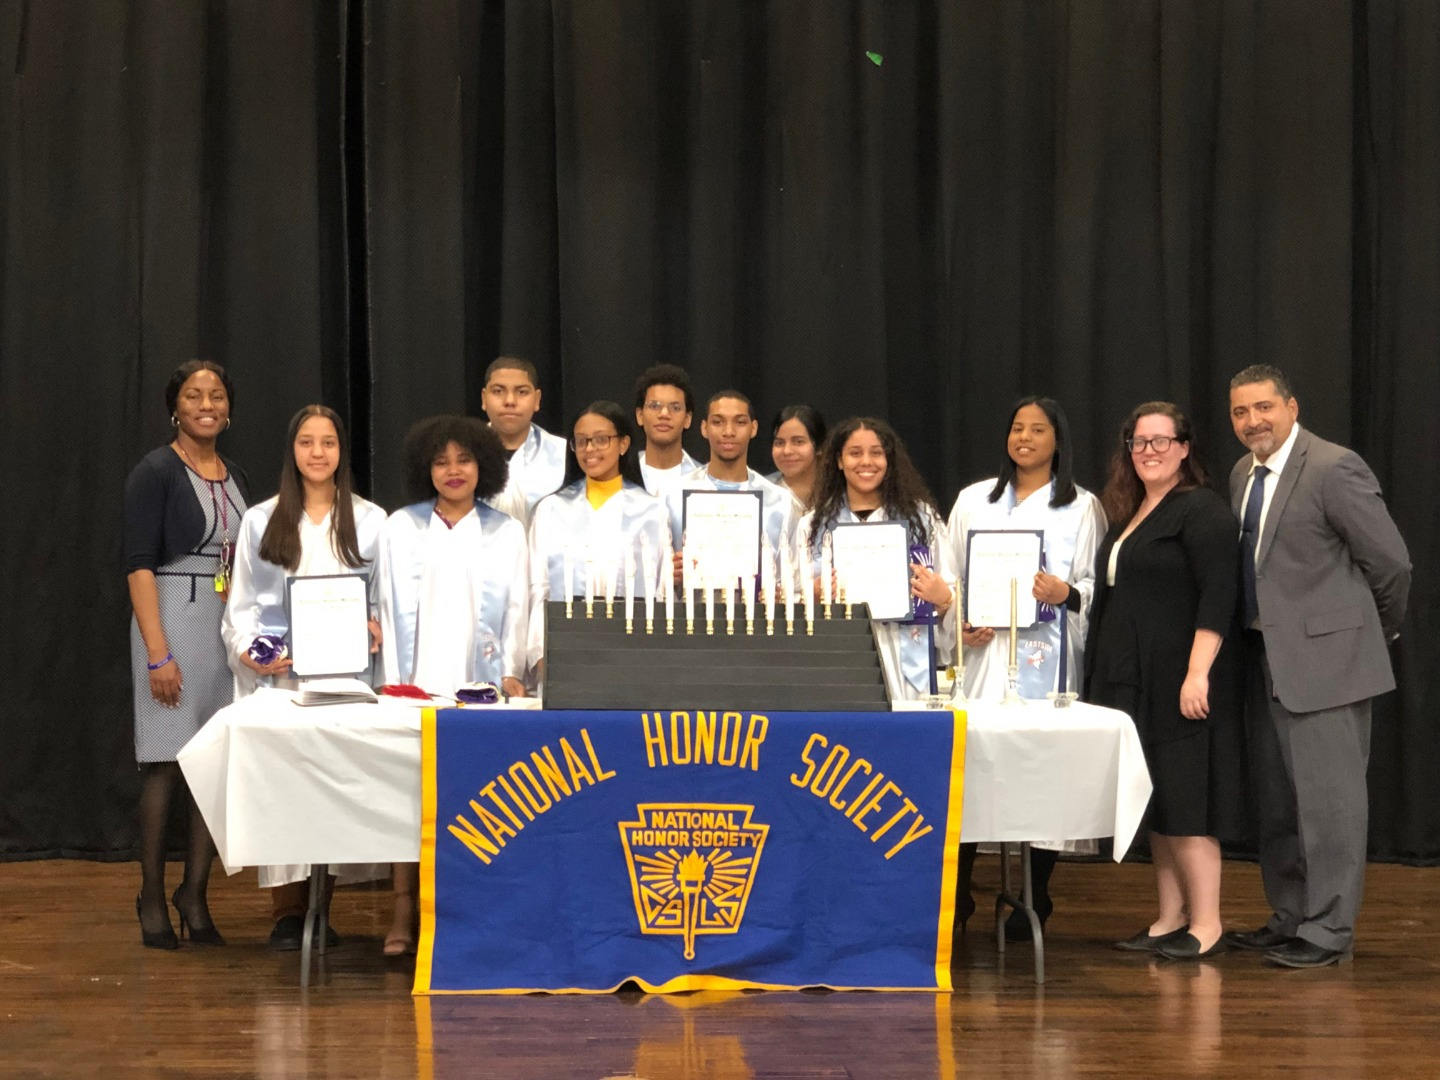 2019 National Honor Society inductees